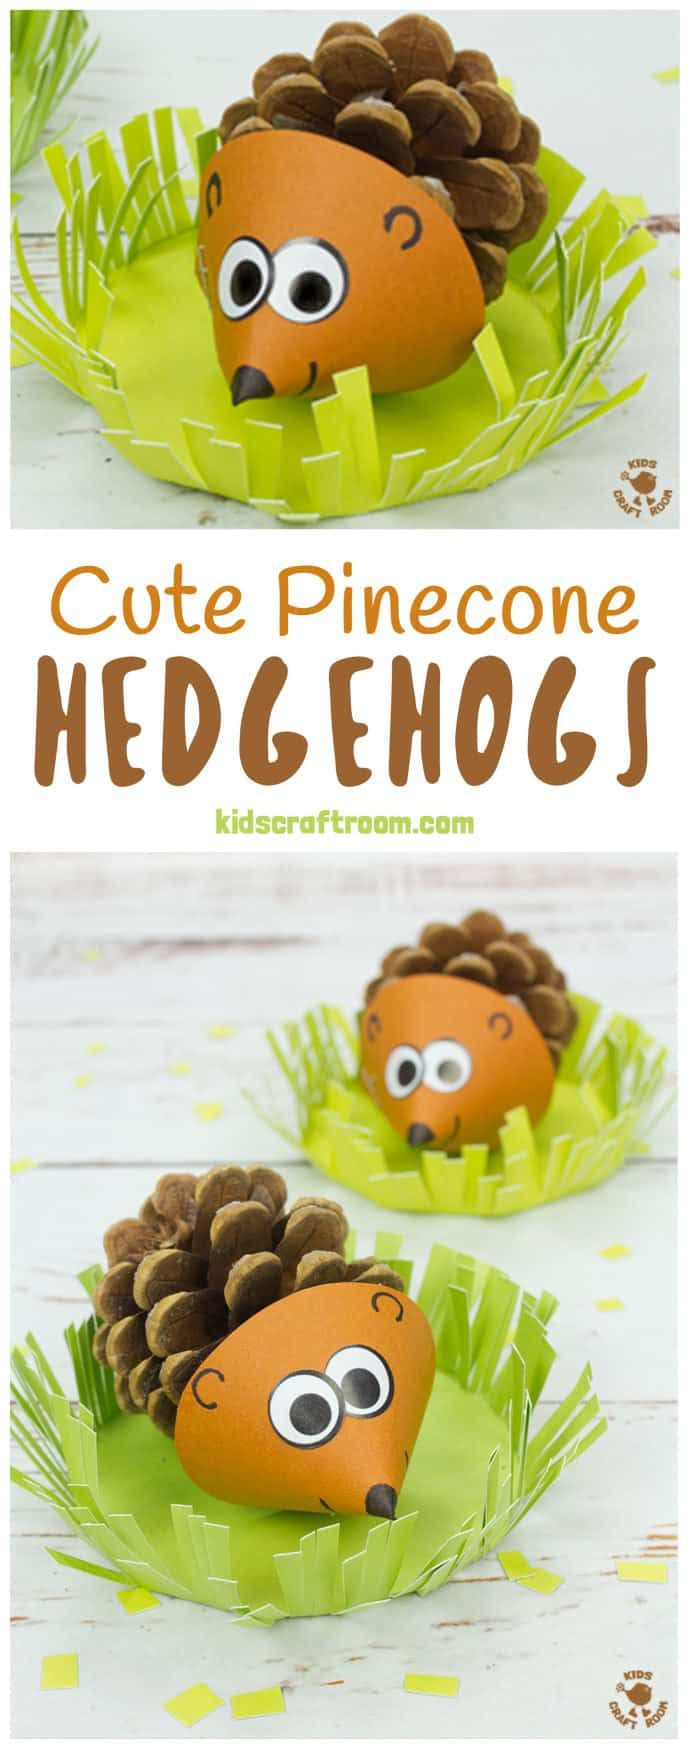 Cute Pinecone Hedgehogs